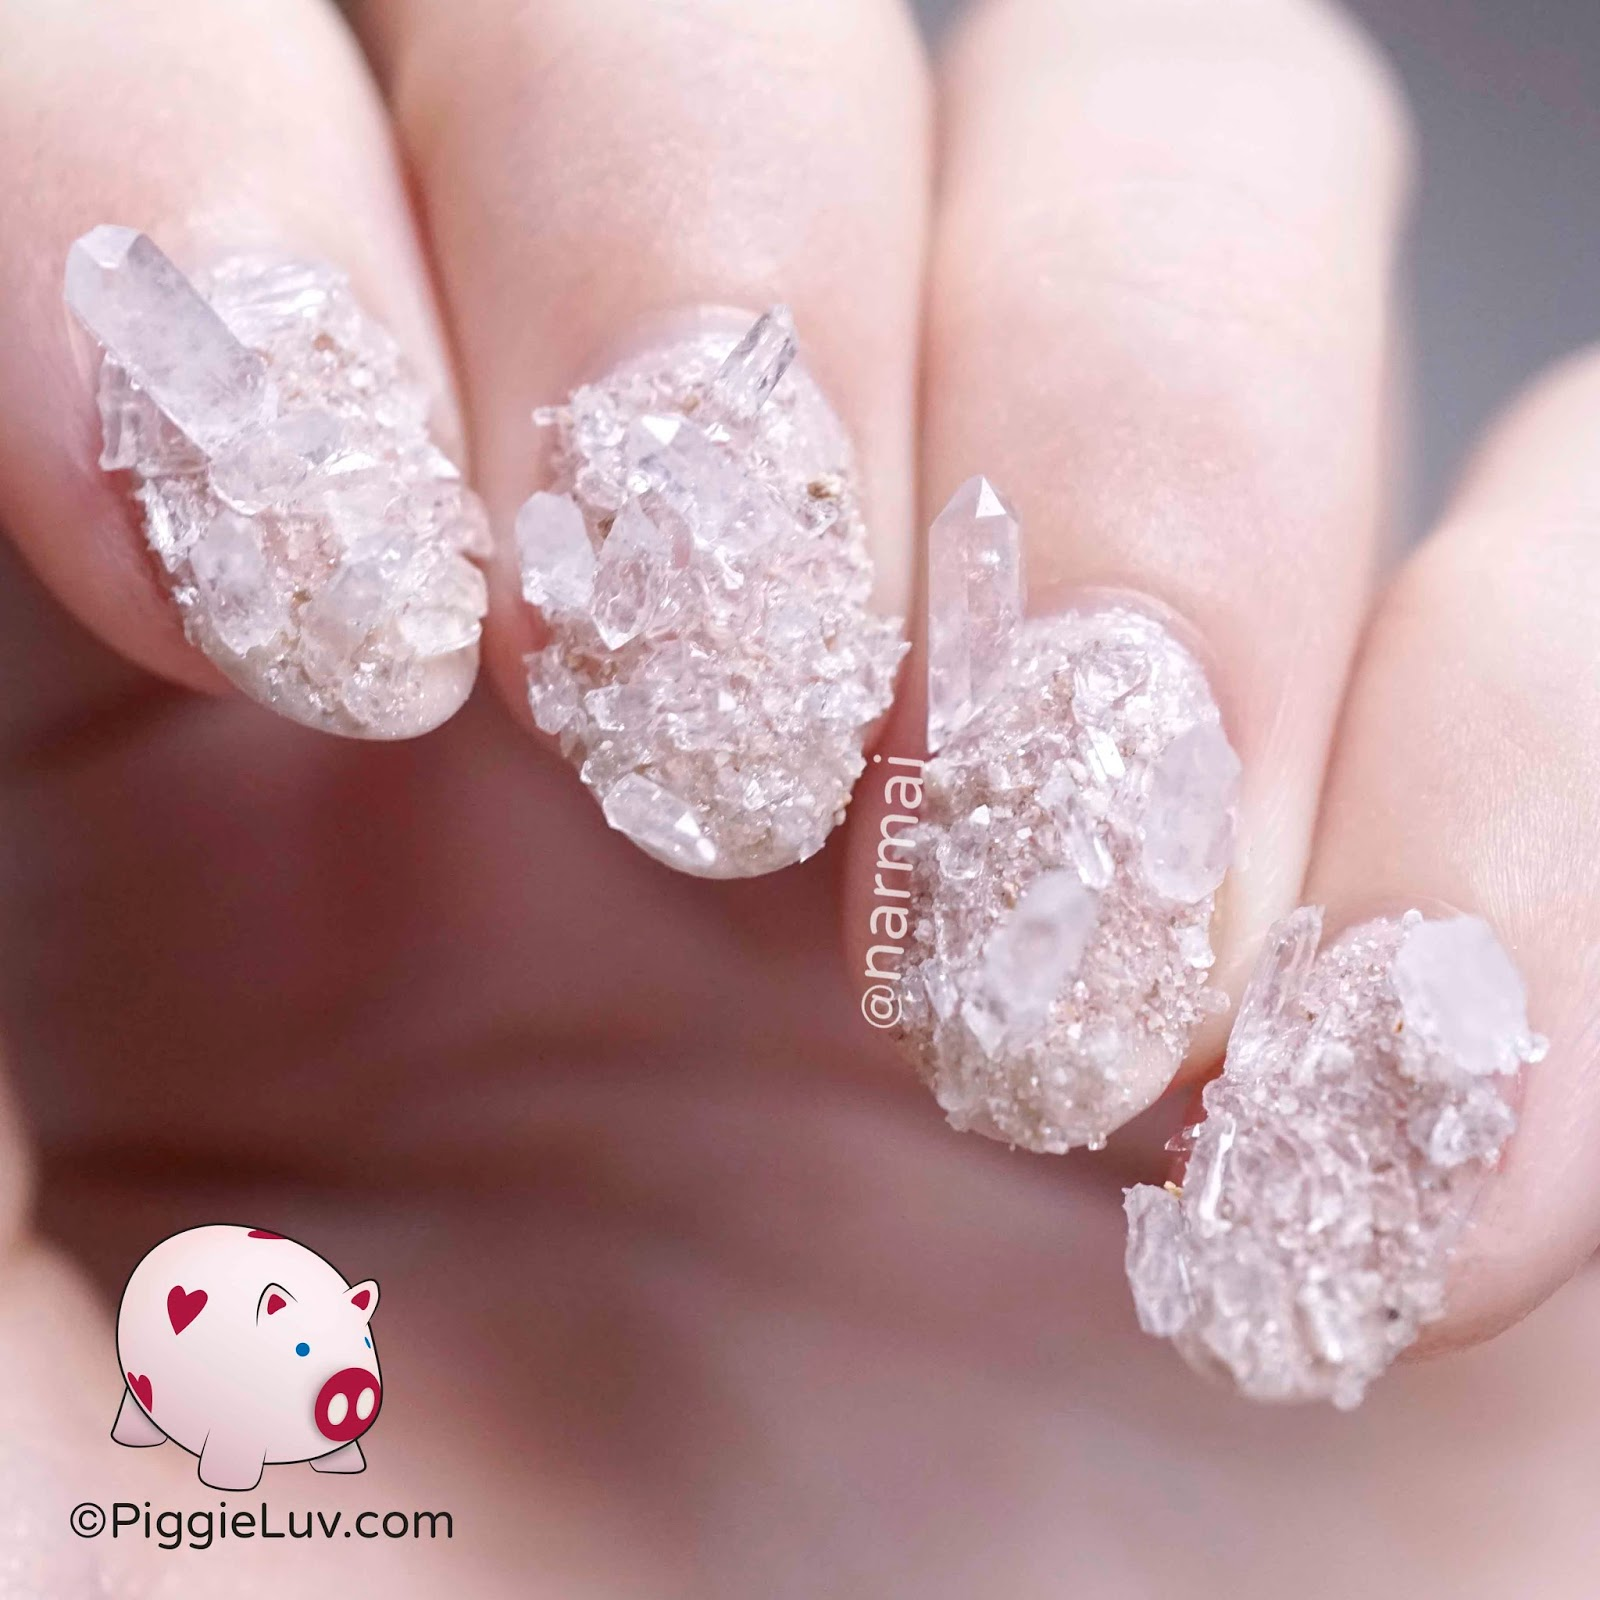 PiggieLuv: Rock crystal/quartz nail art